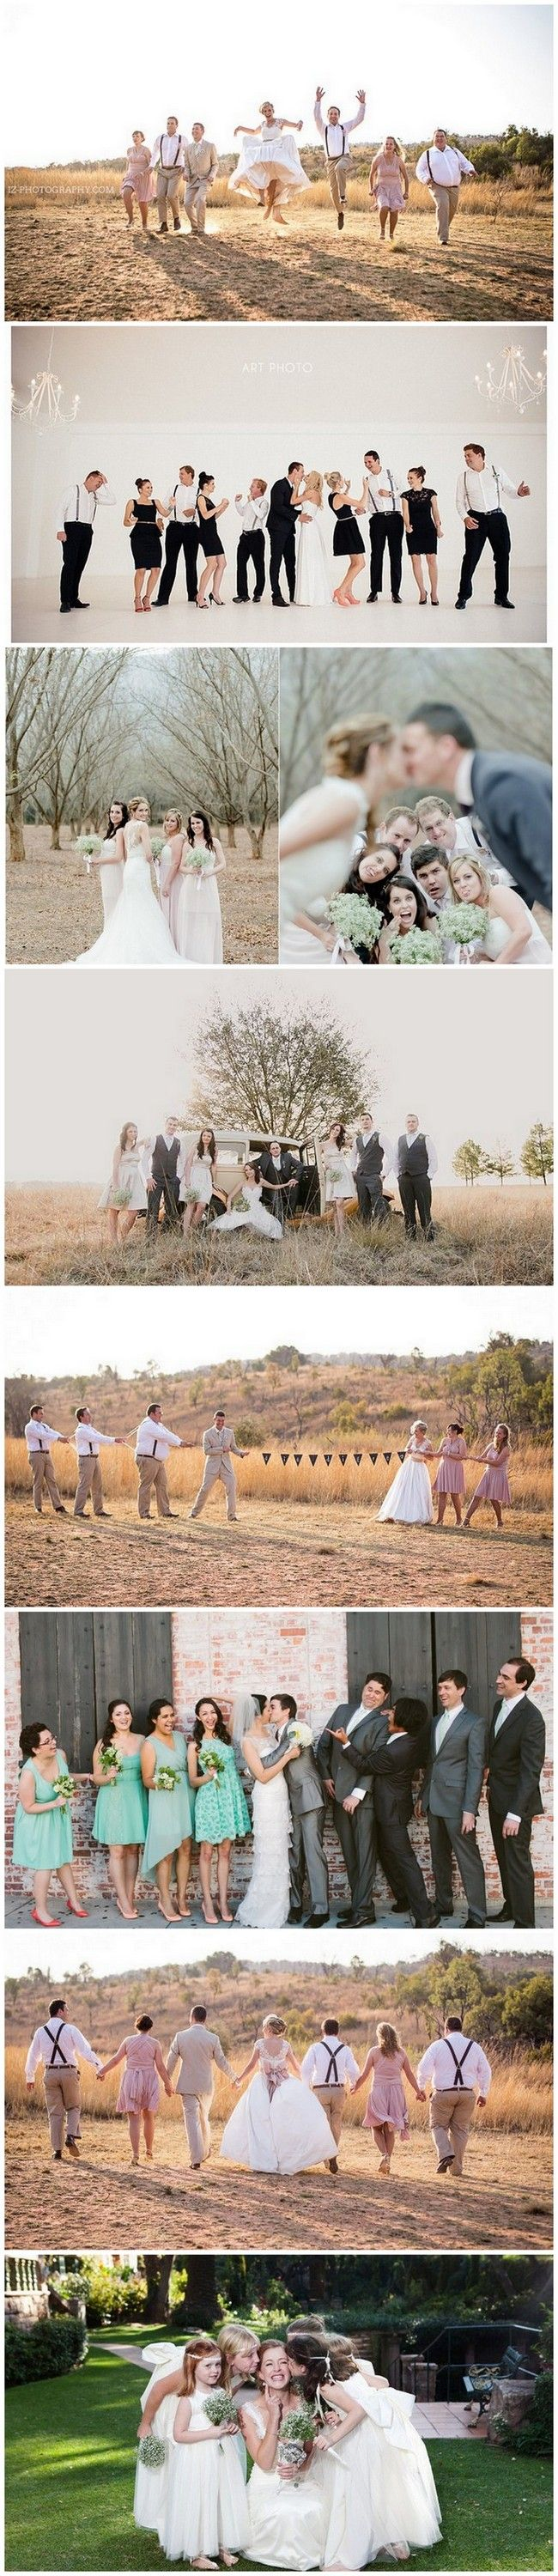 Fun Bridal Party Photo Ideas http://www.confettidaydreams.com/wedding-photo-ideas-and-poses-for-your-wedding-party/